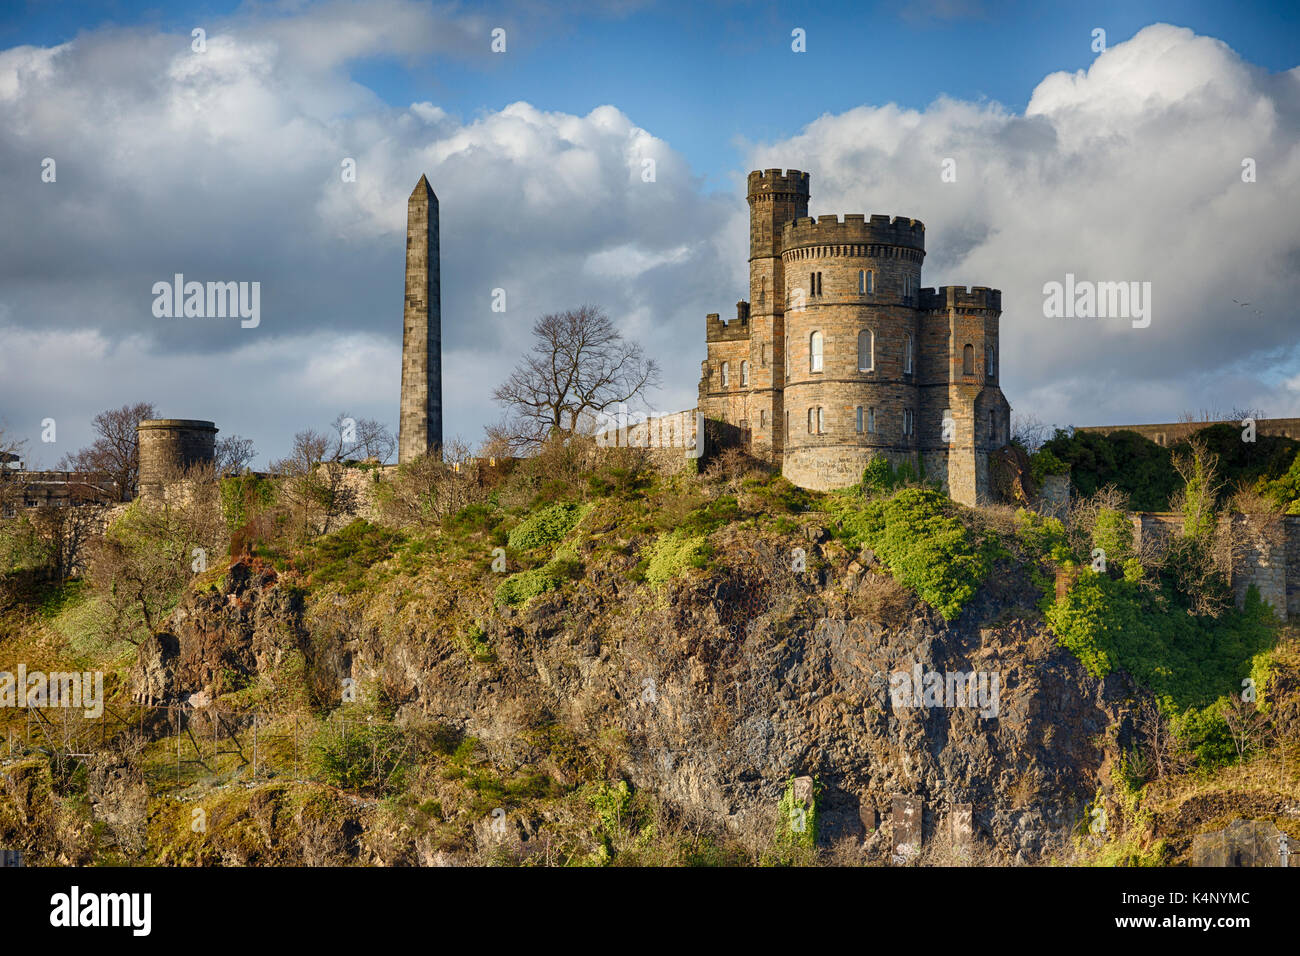 View of Calton Hill in Edinburgh Scotland with Martyr's Monument and Governors House in the Foreground Stock Photo